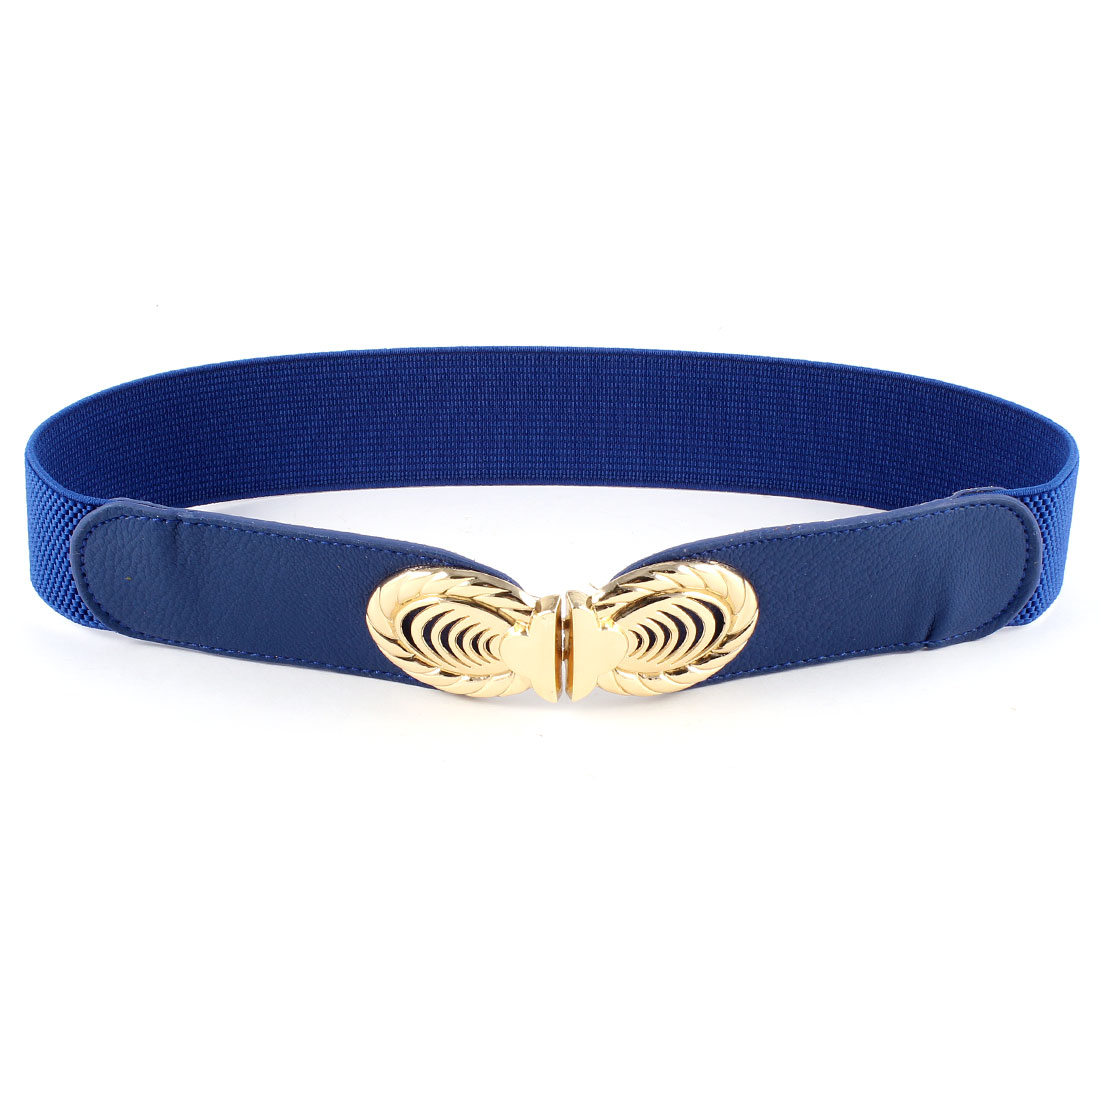 Oval Interlocking Buckle Blue Faux Leather Stretchy Skinny Waist Belt for Women